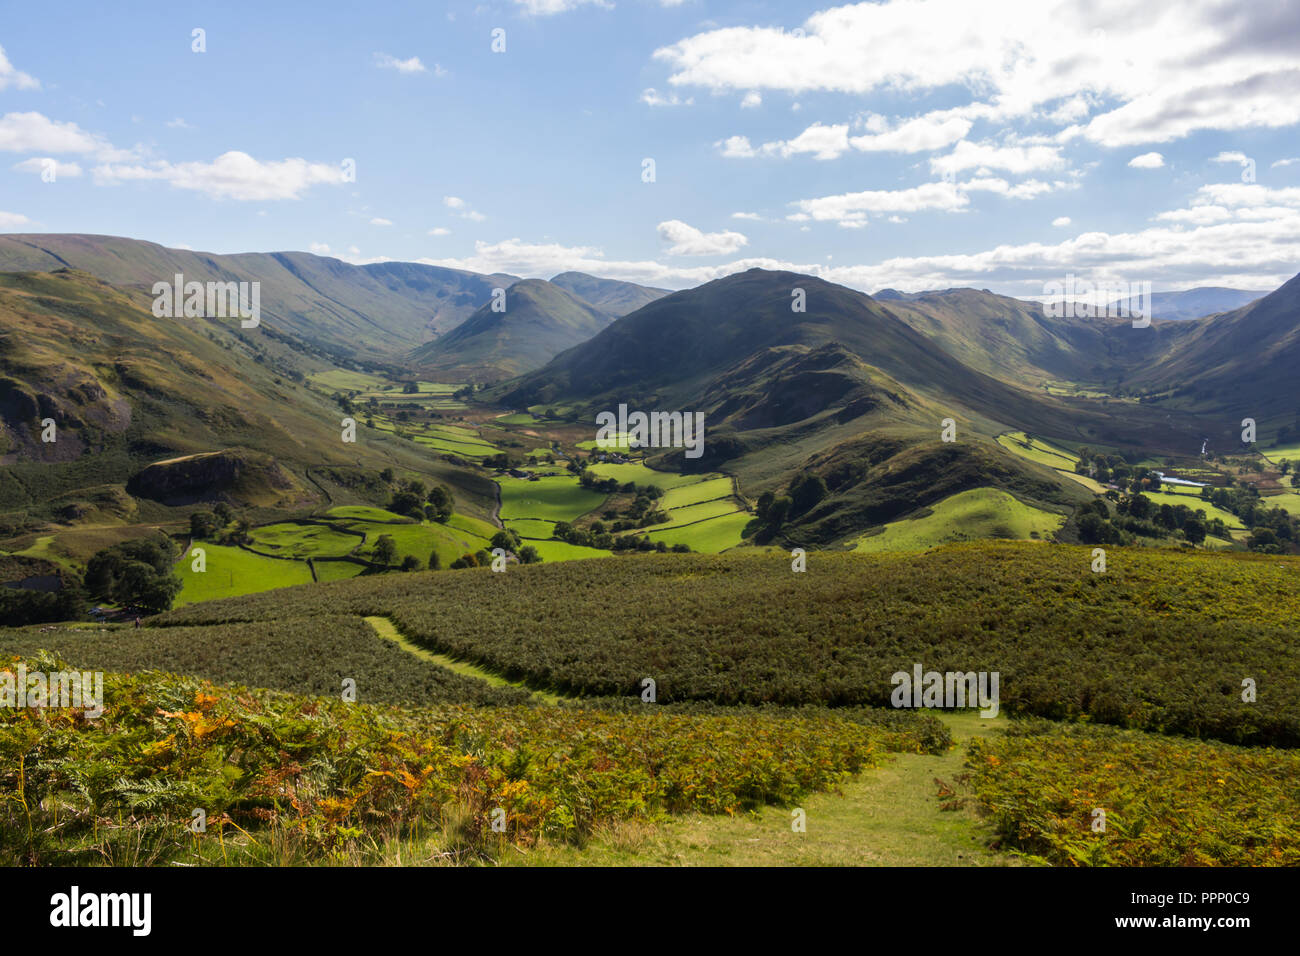 View over green fields from Hallin Fell to Martindale and Boardale valleys with Beda Fell in centre. Lake District, England. Stock Photo